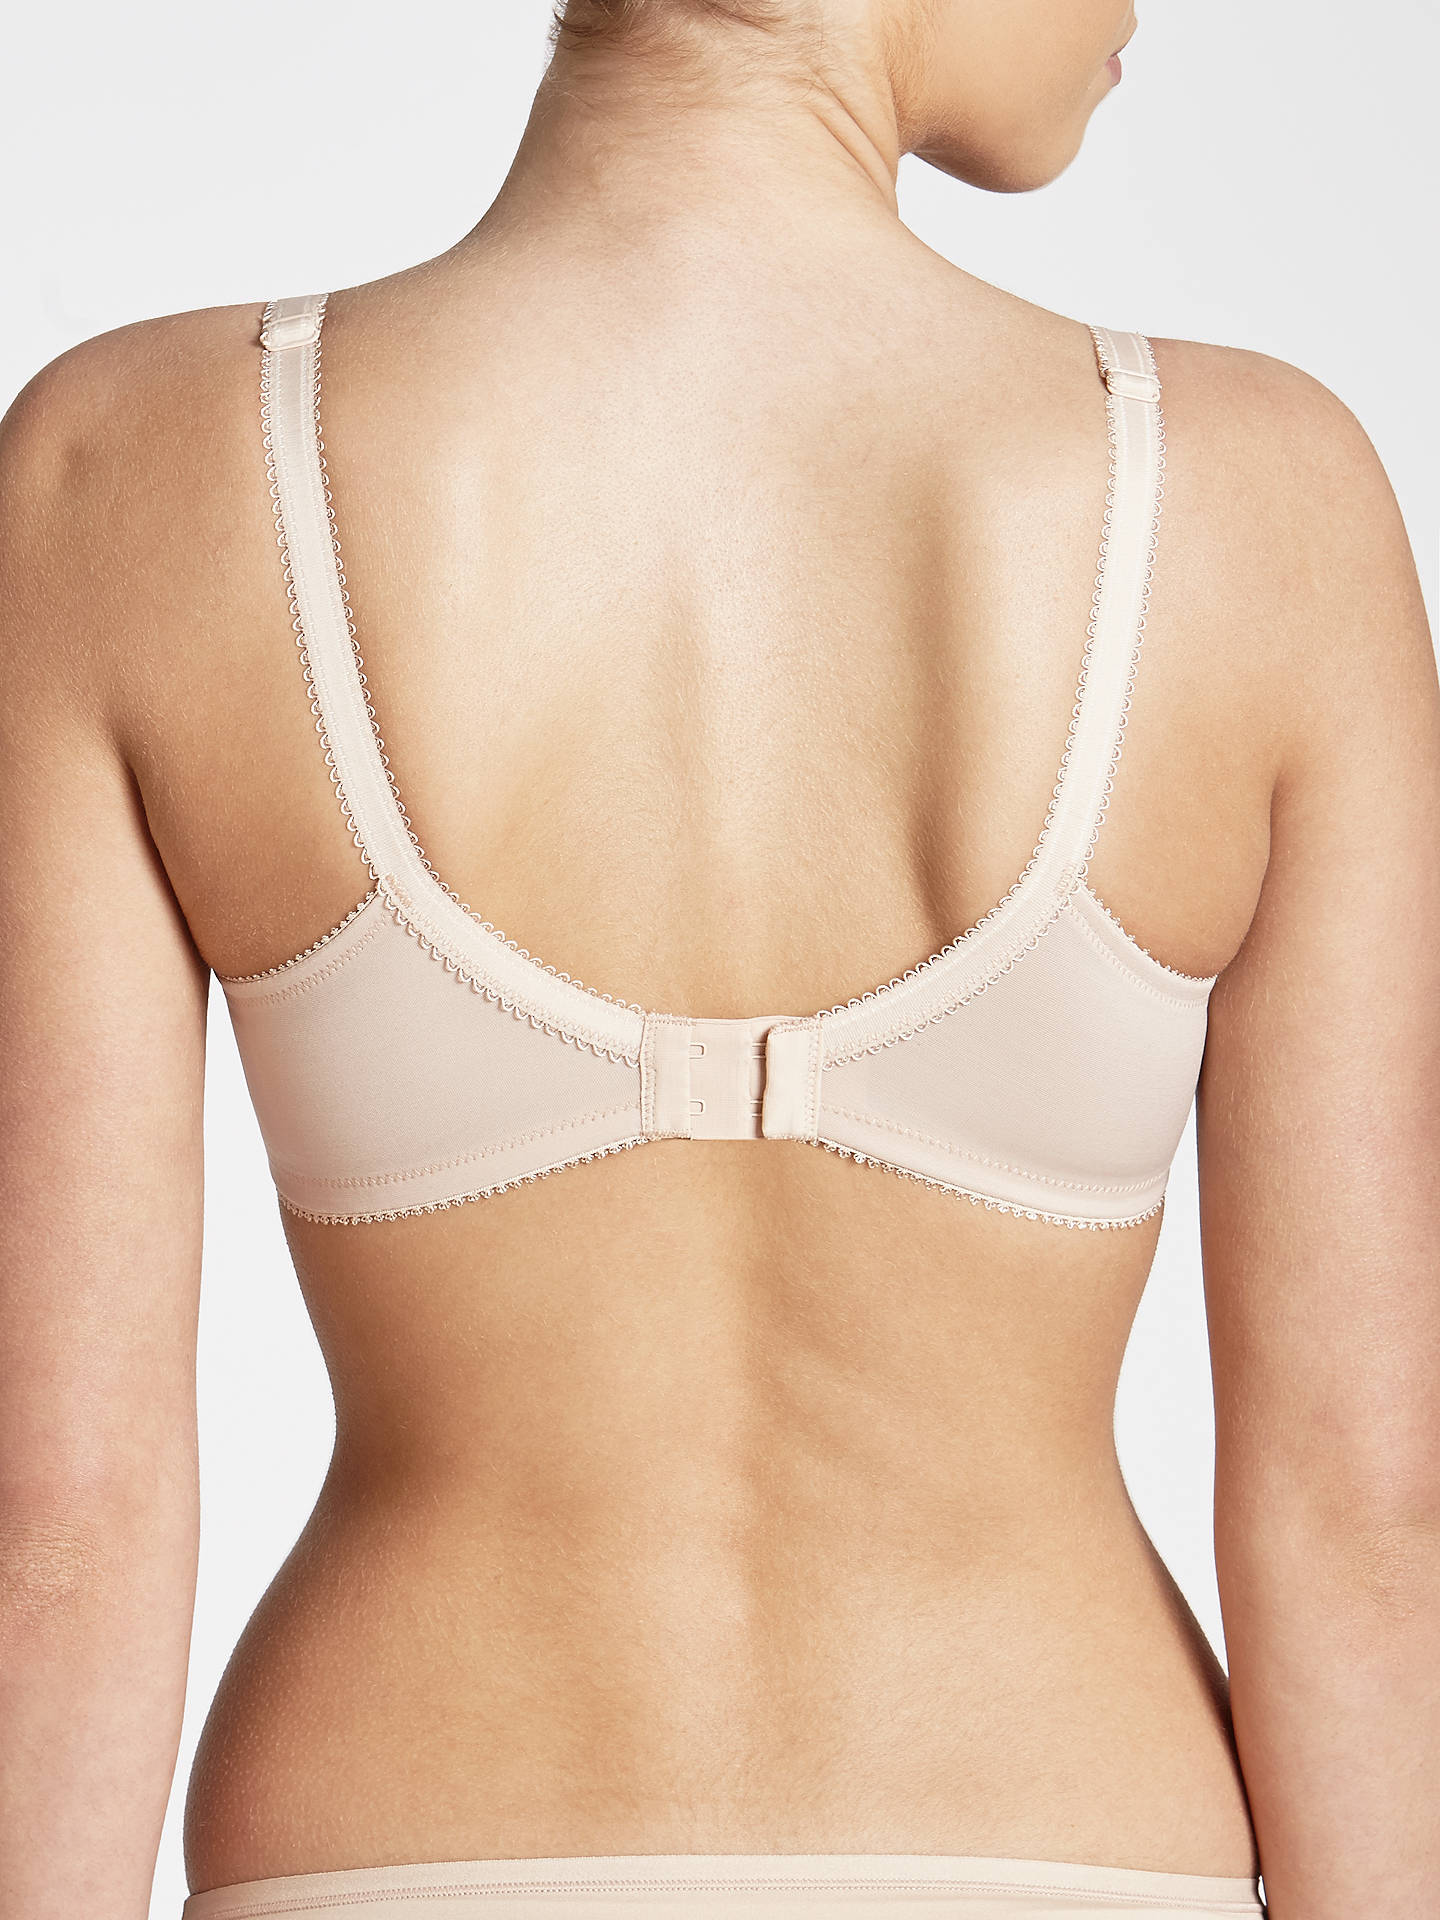 Buy John Lewis & Partners Lauren Lace Non Wired Non Padded Bra, Nude, 30B Online at johnlewis.com